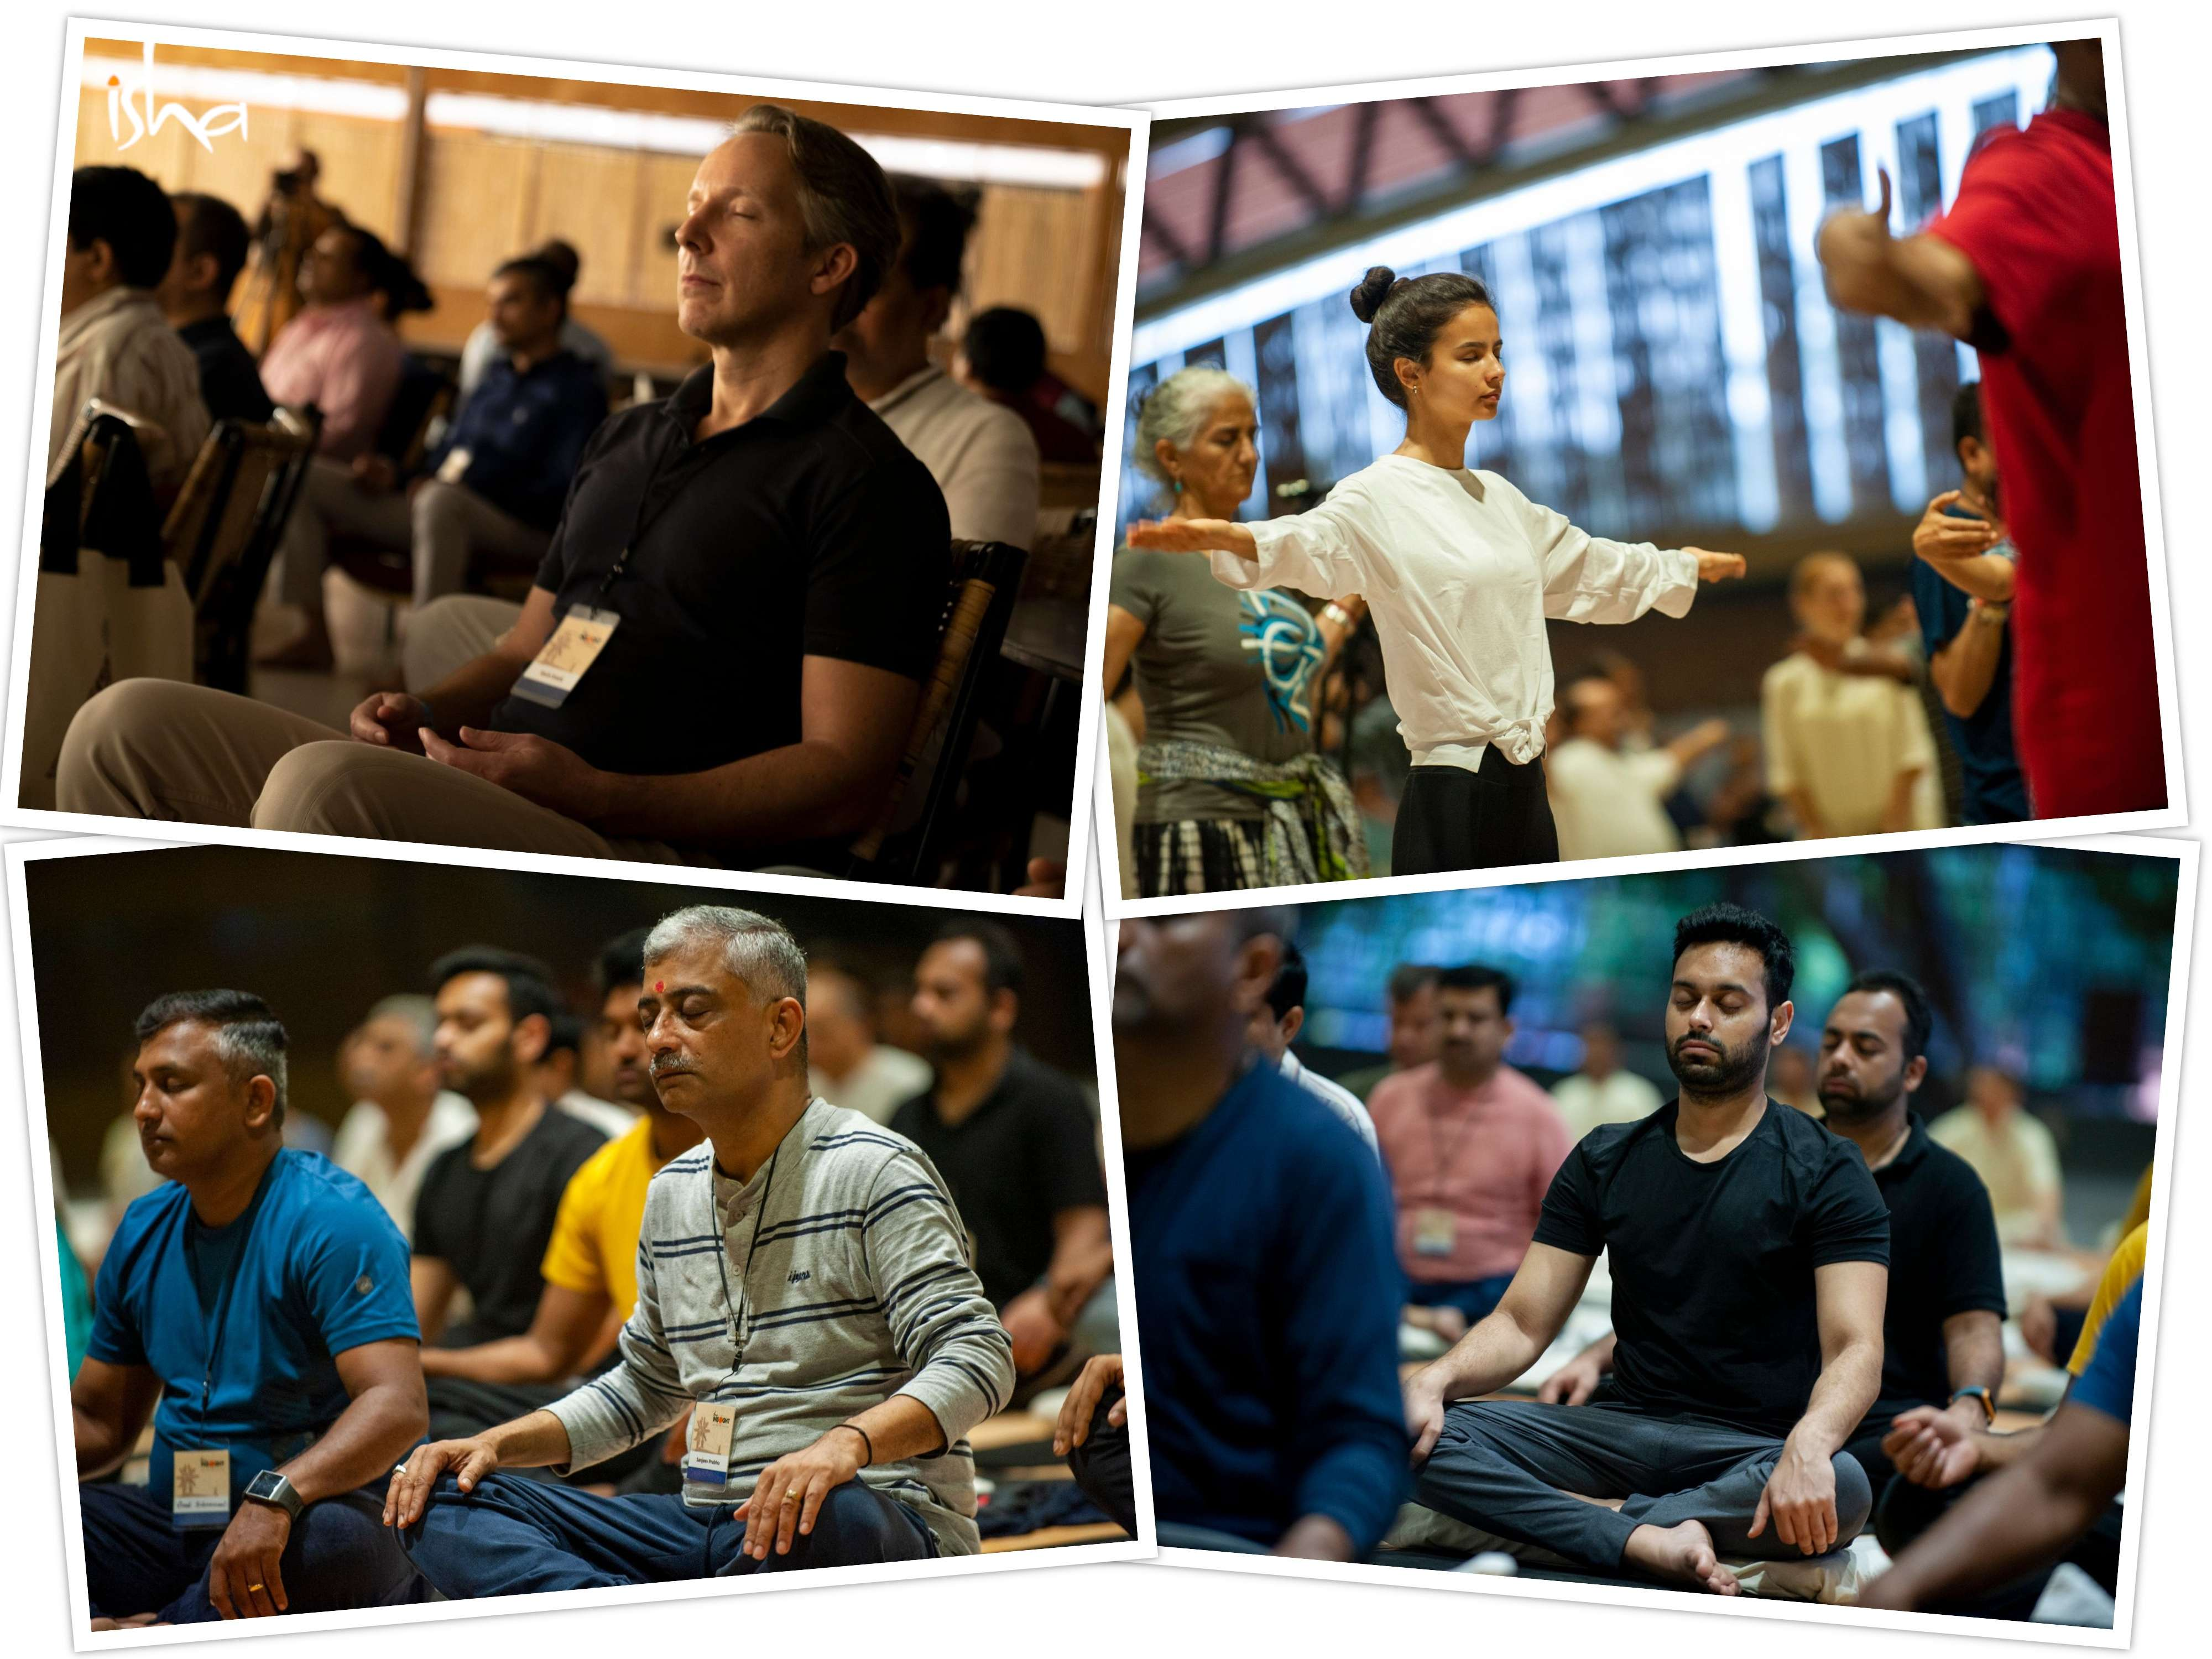 isha_blog_article_insight_2019_day2_participants_doing_yoga_collage_1.jpg